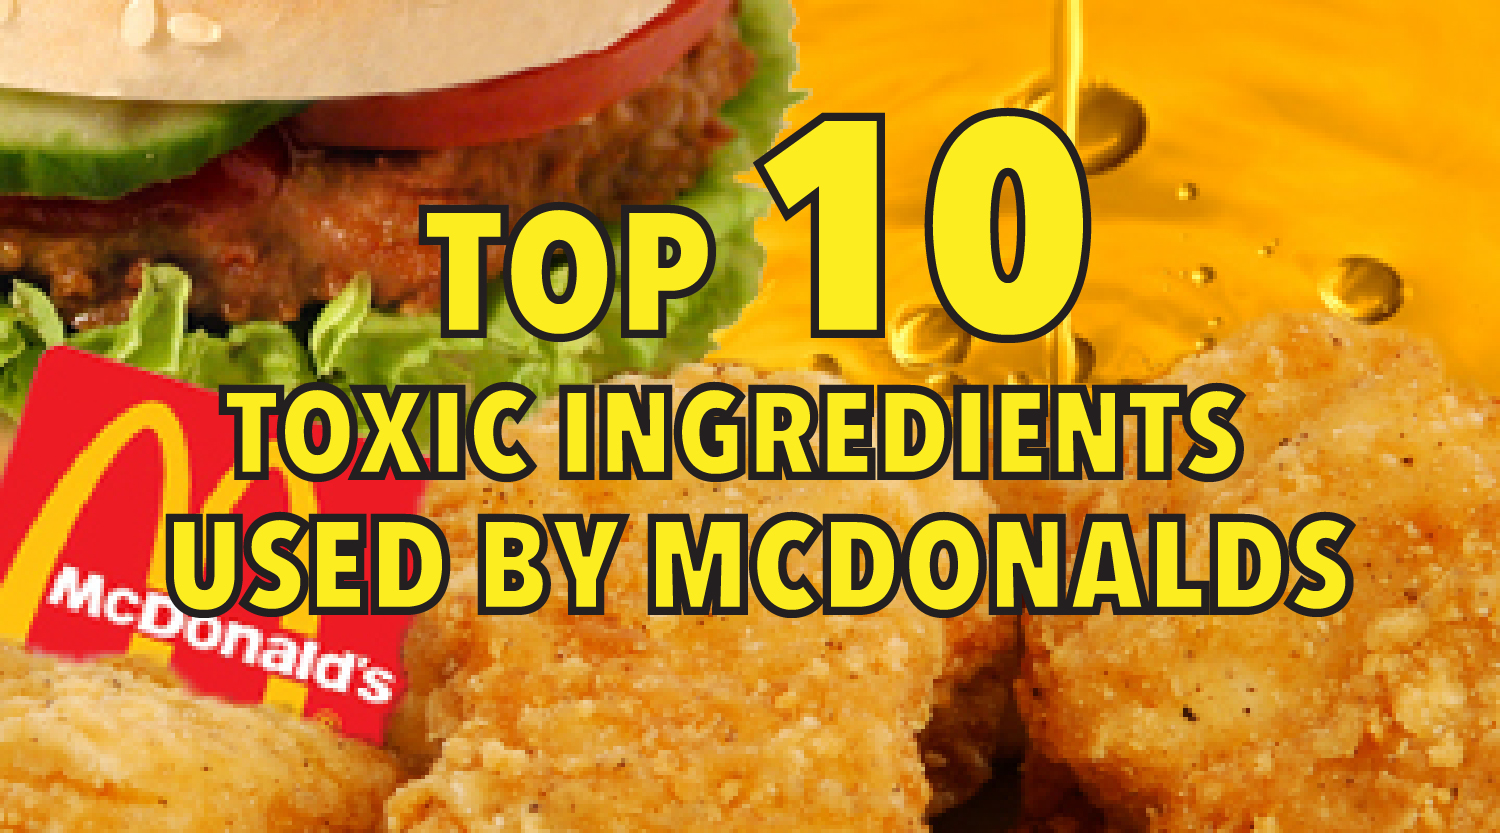 Top 10 toxic ingredients used by mcdonalds